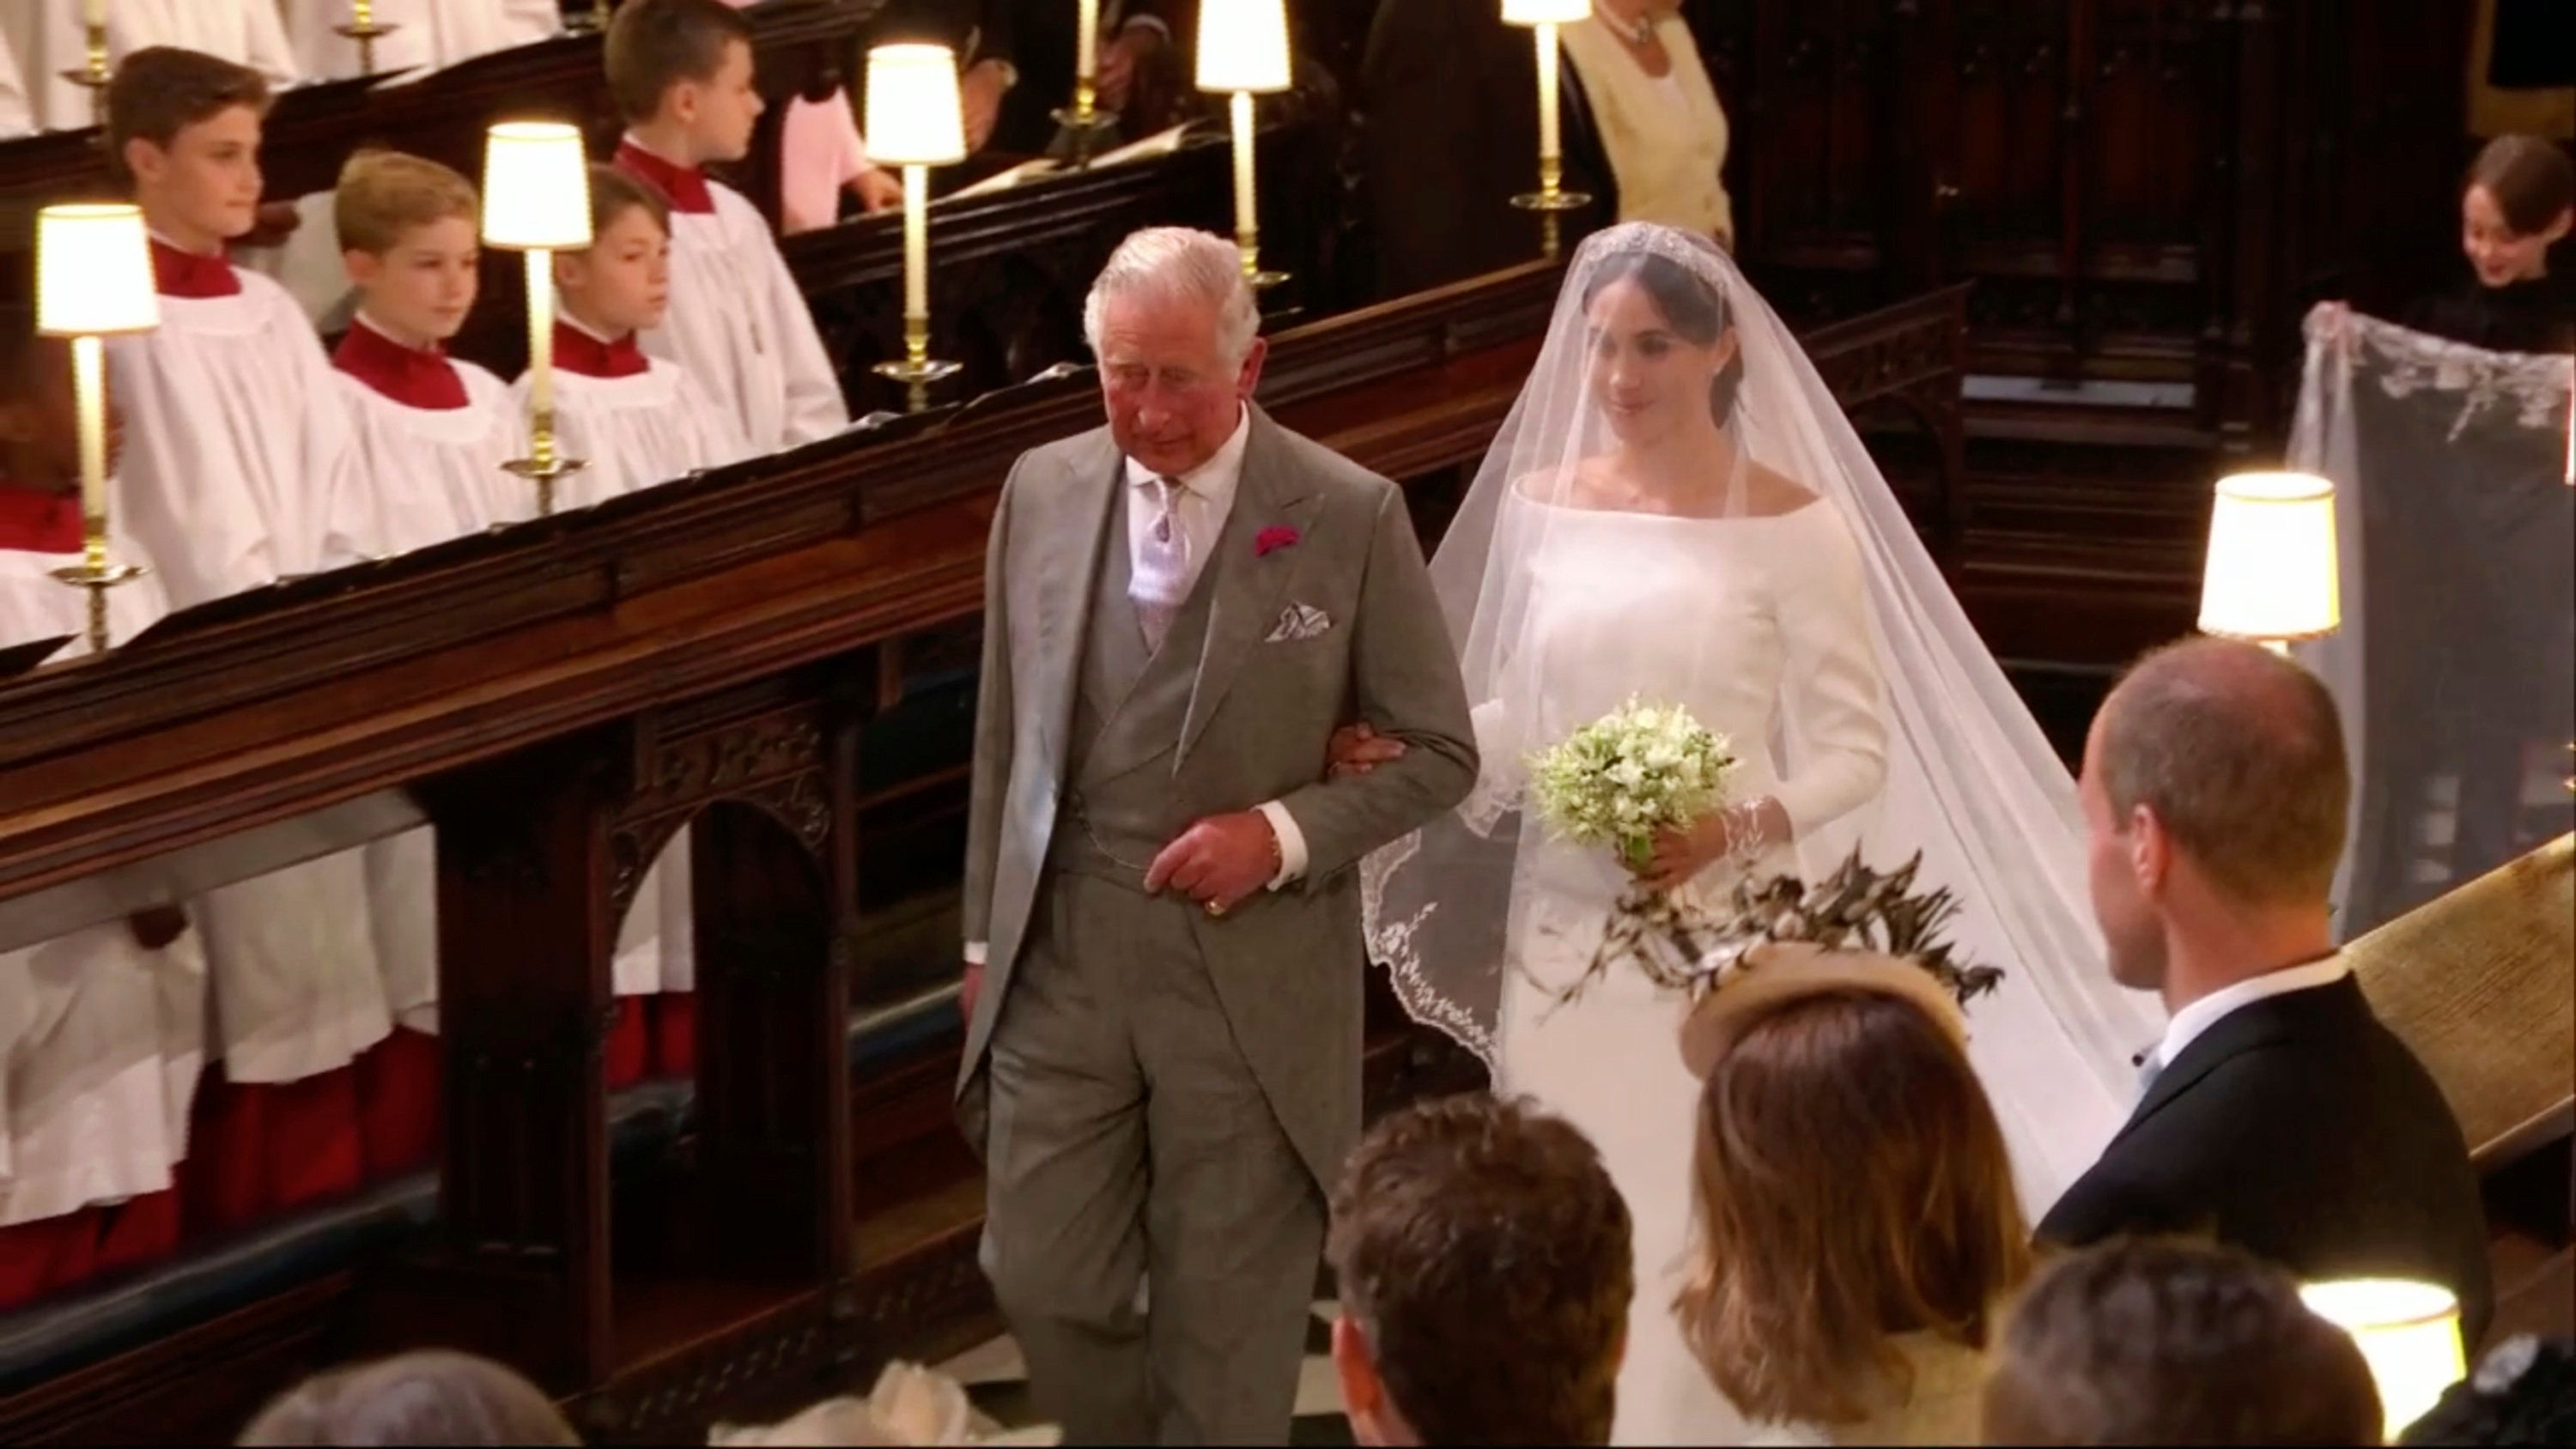 Meghan Markle walks down the aisle with Prince Charles for her wedding ceremony at St. George's Chapel...